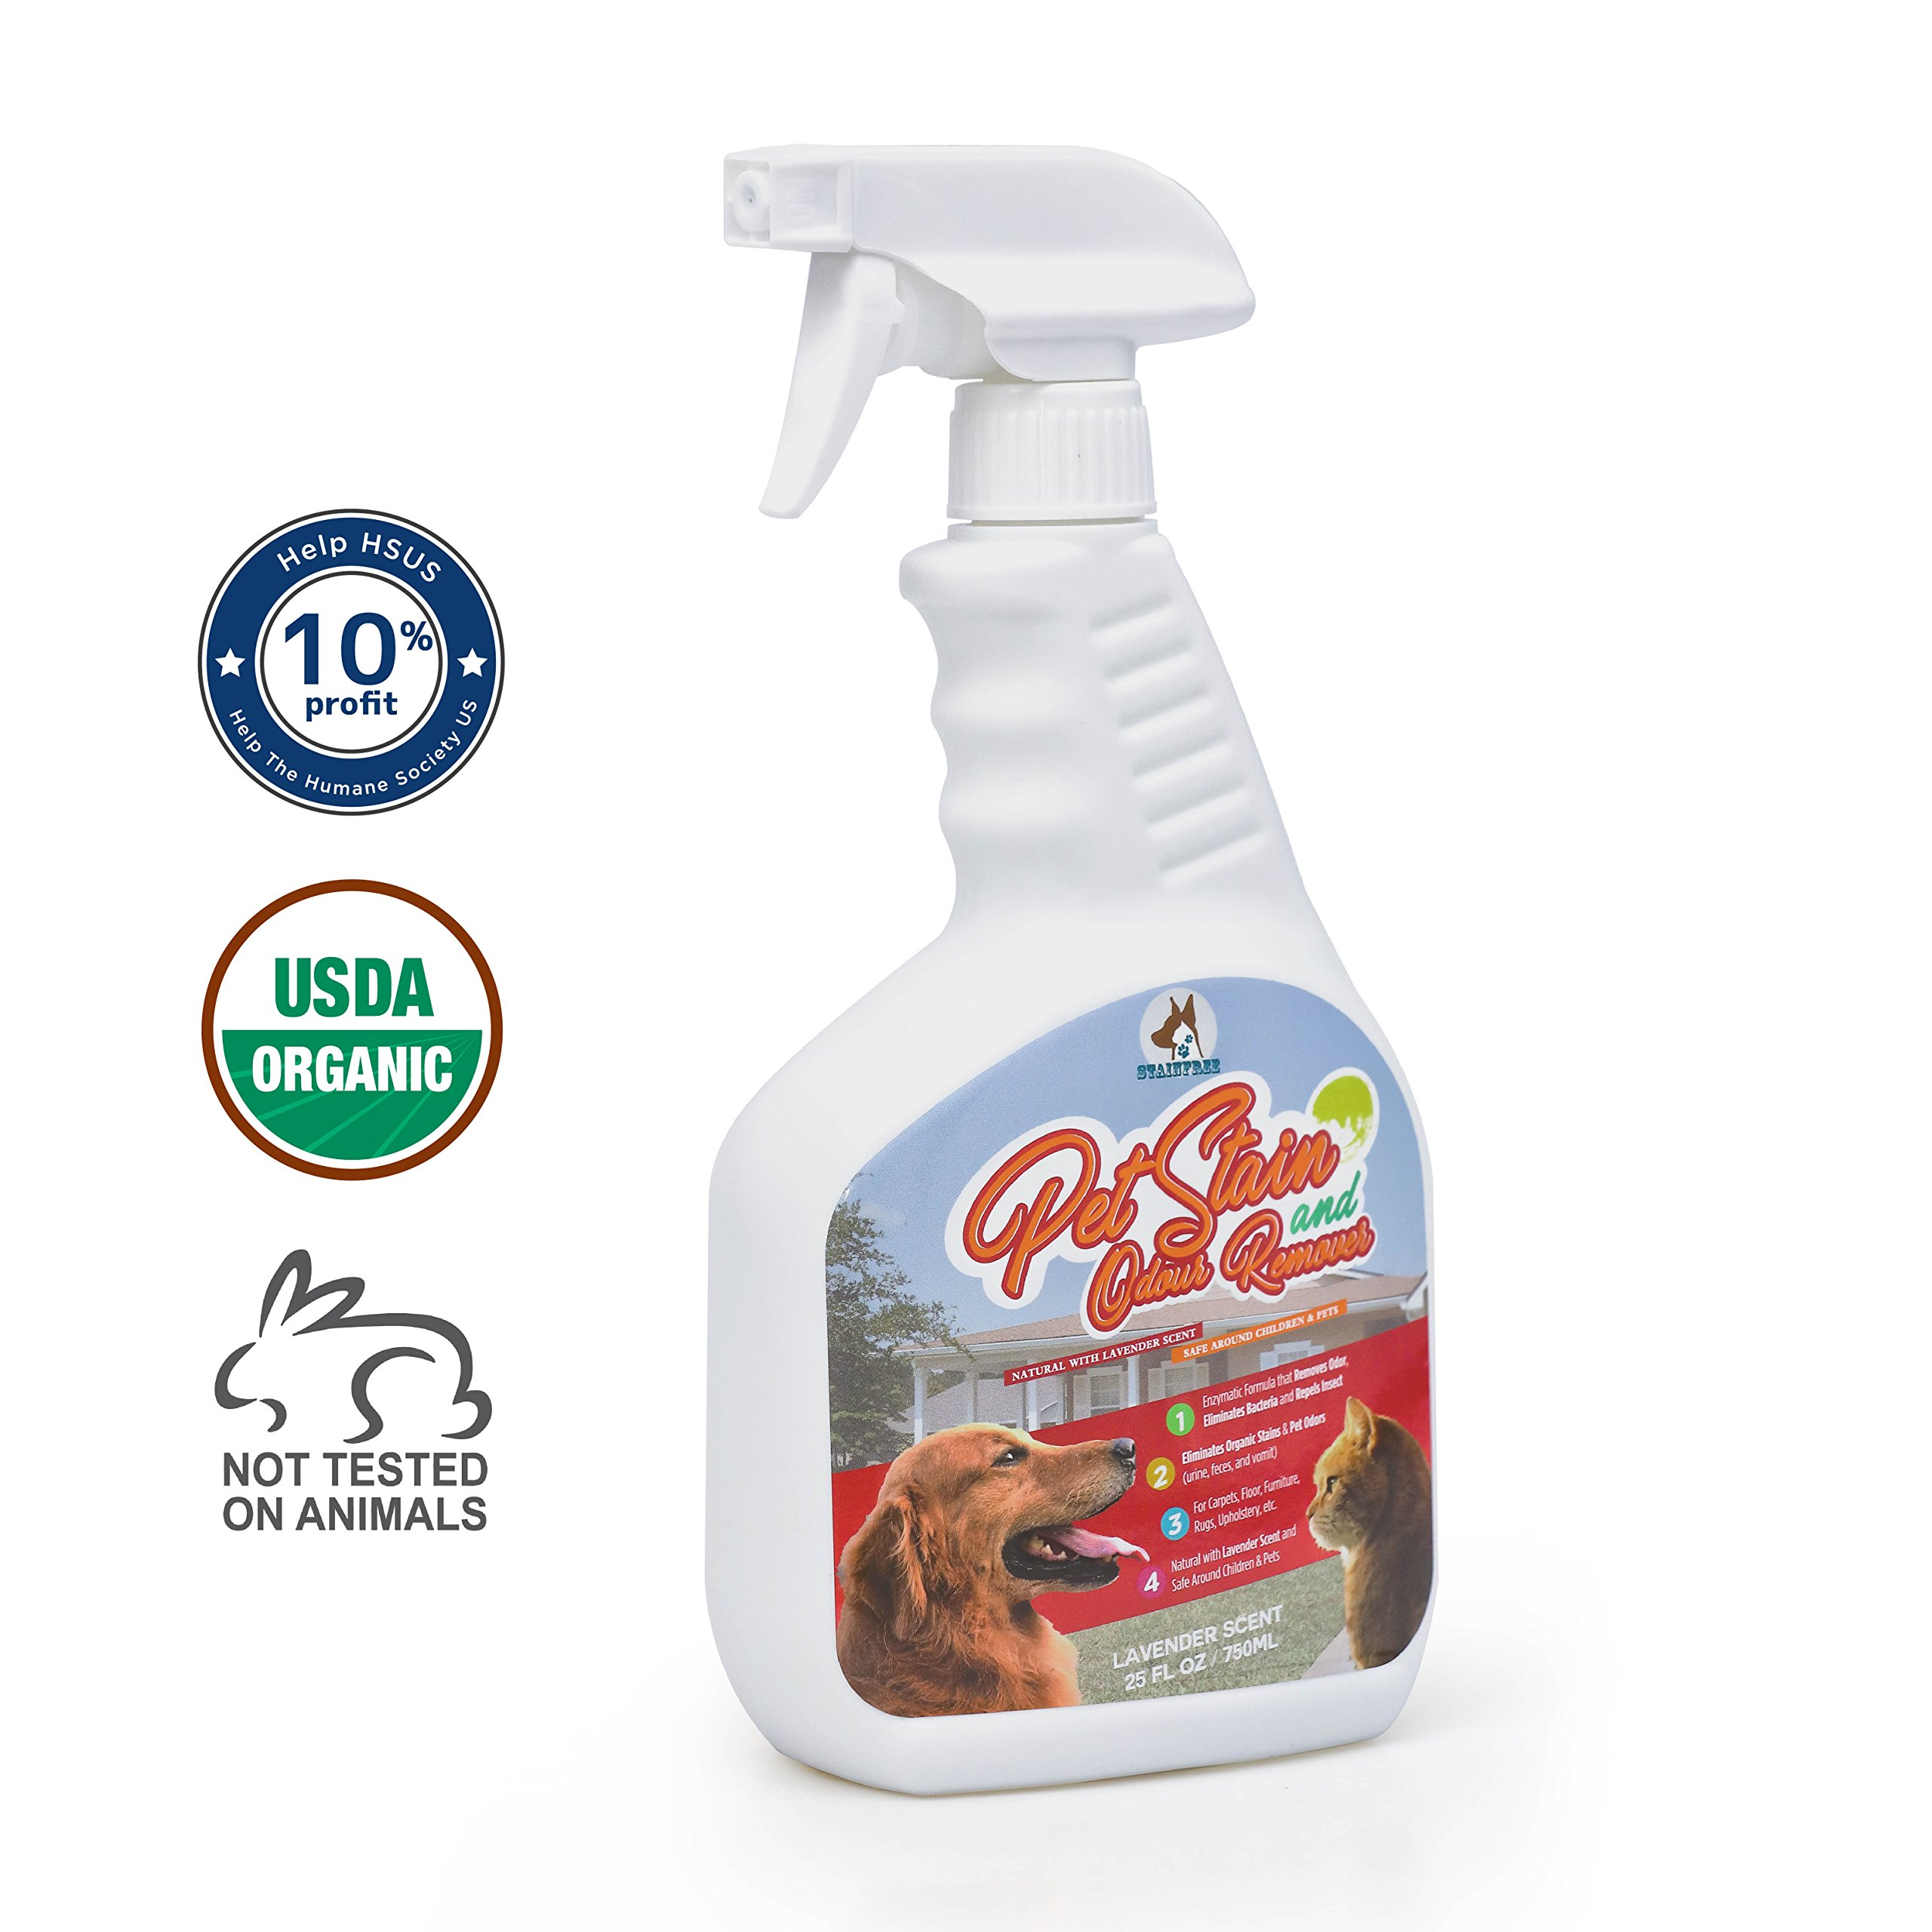 StainFree's Disinfectant, Pet Stain & Odour Remover from Natural Ingredients - Multi-Surface Enzyme Cleaner Spray for Dog or Cat Urine, Feces, Vomit, Drool